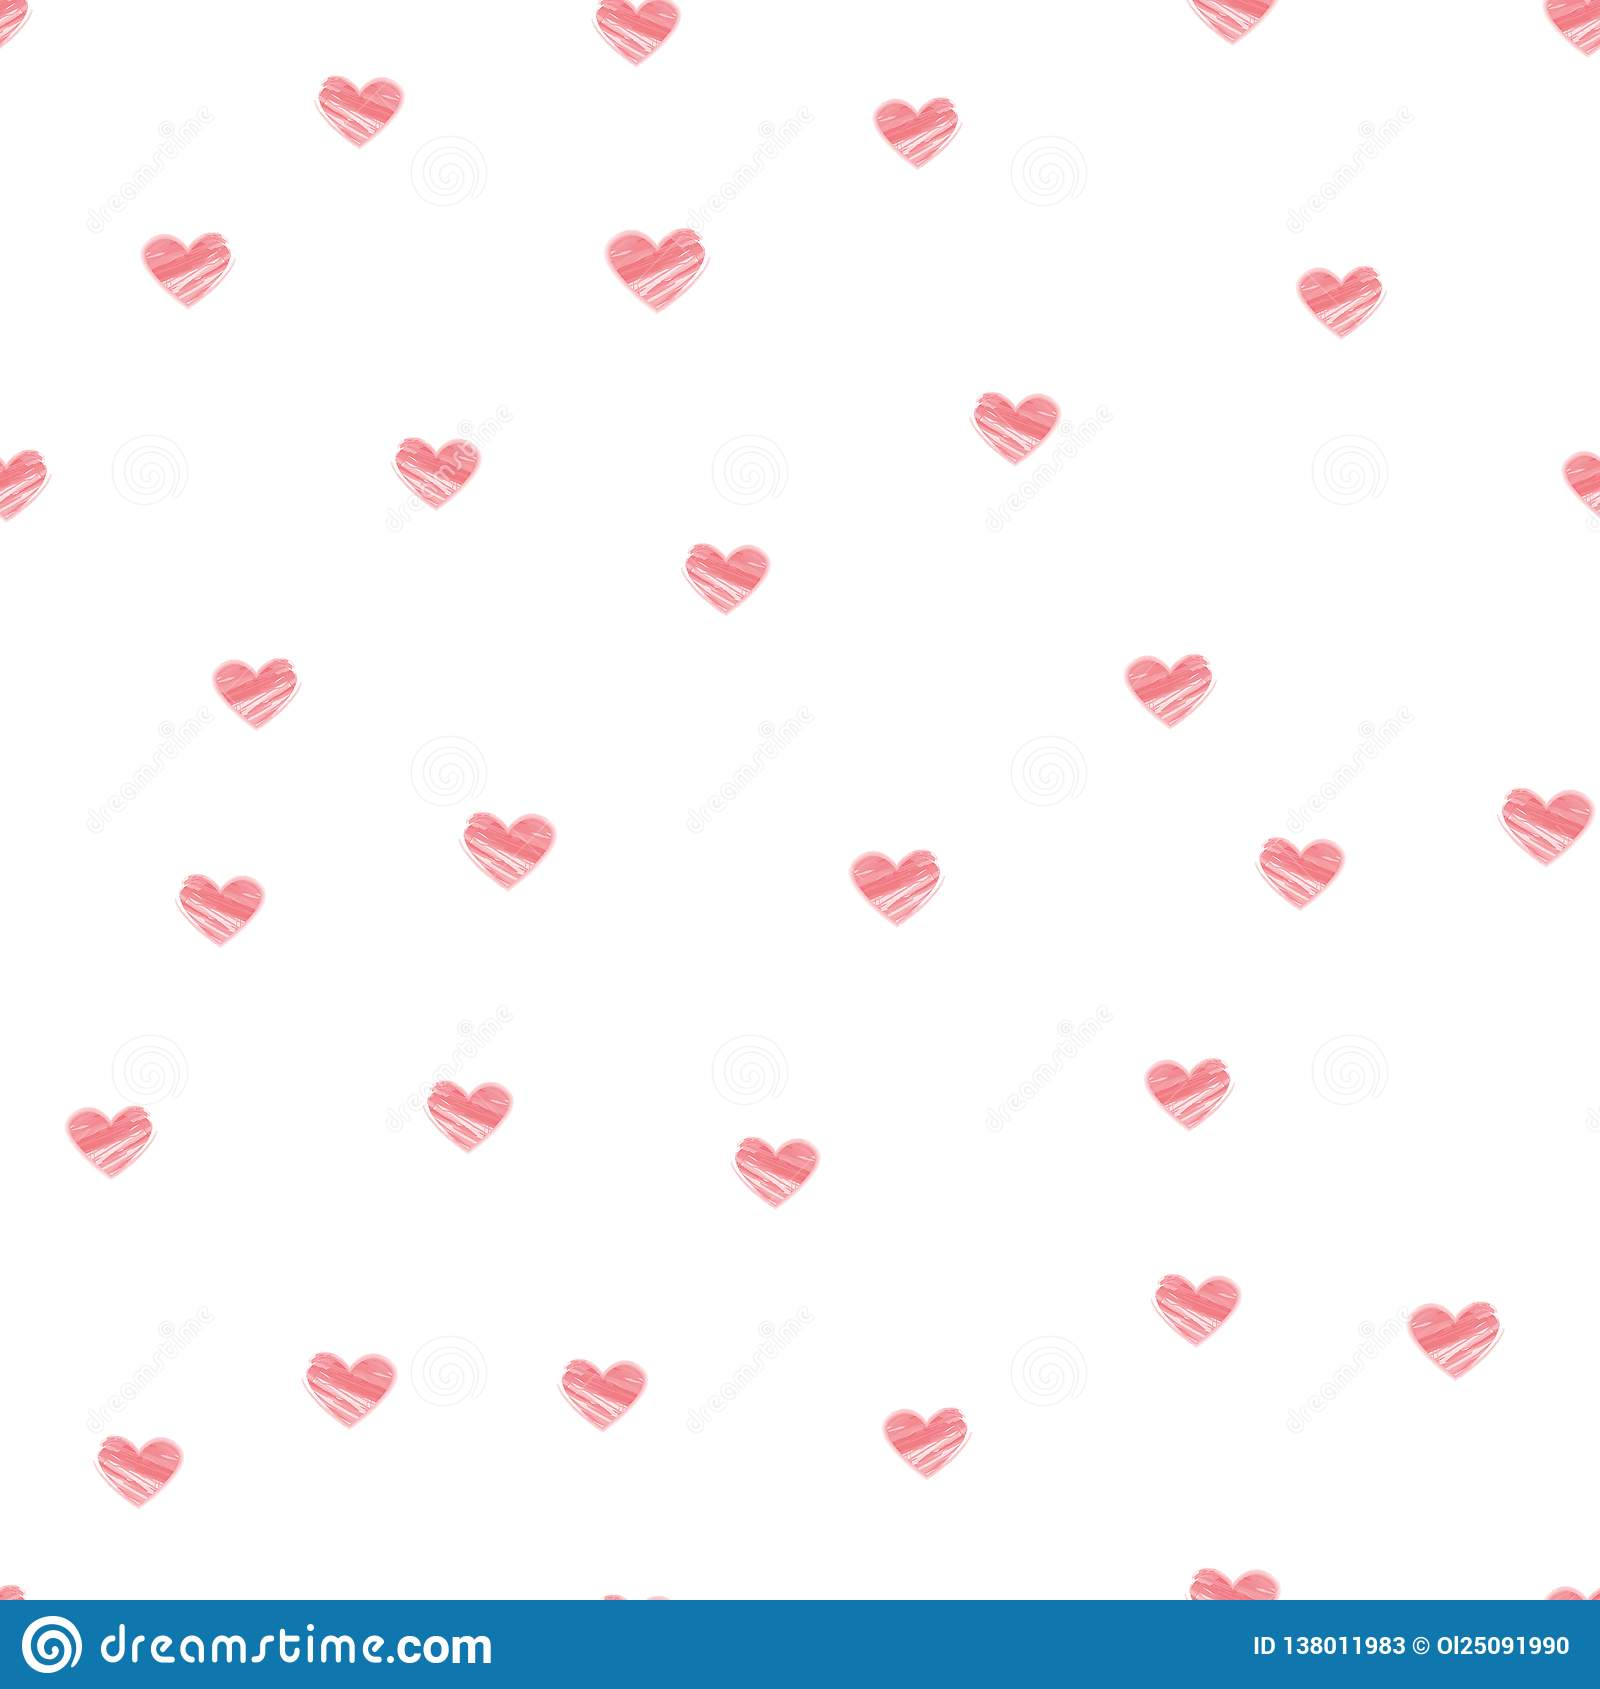 Pastel Heart Seamless Pattern on White Background - Vector